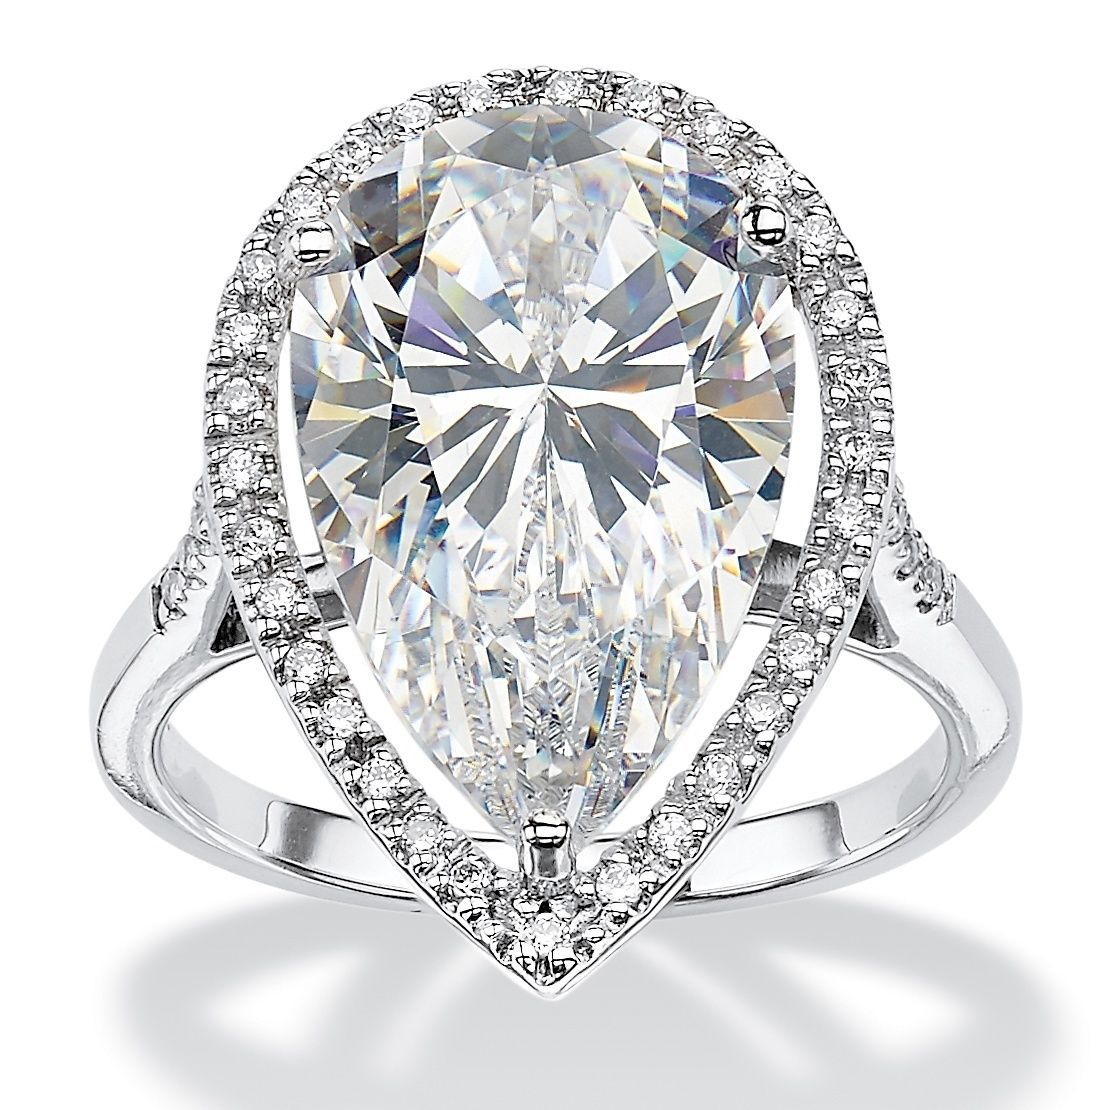 Platinum Over Sterling Silver Cubic Zirconia Ring White Jewelry Platinum Jewelry Fashion Rings